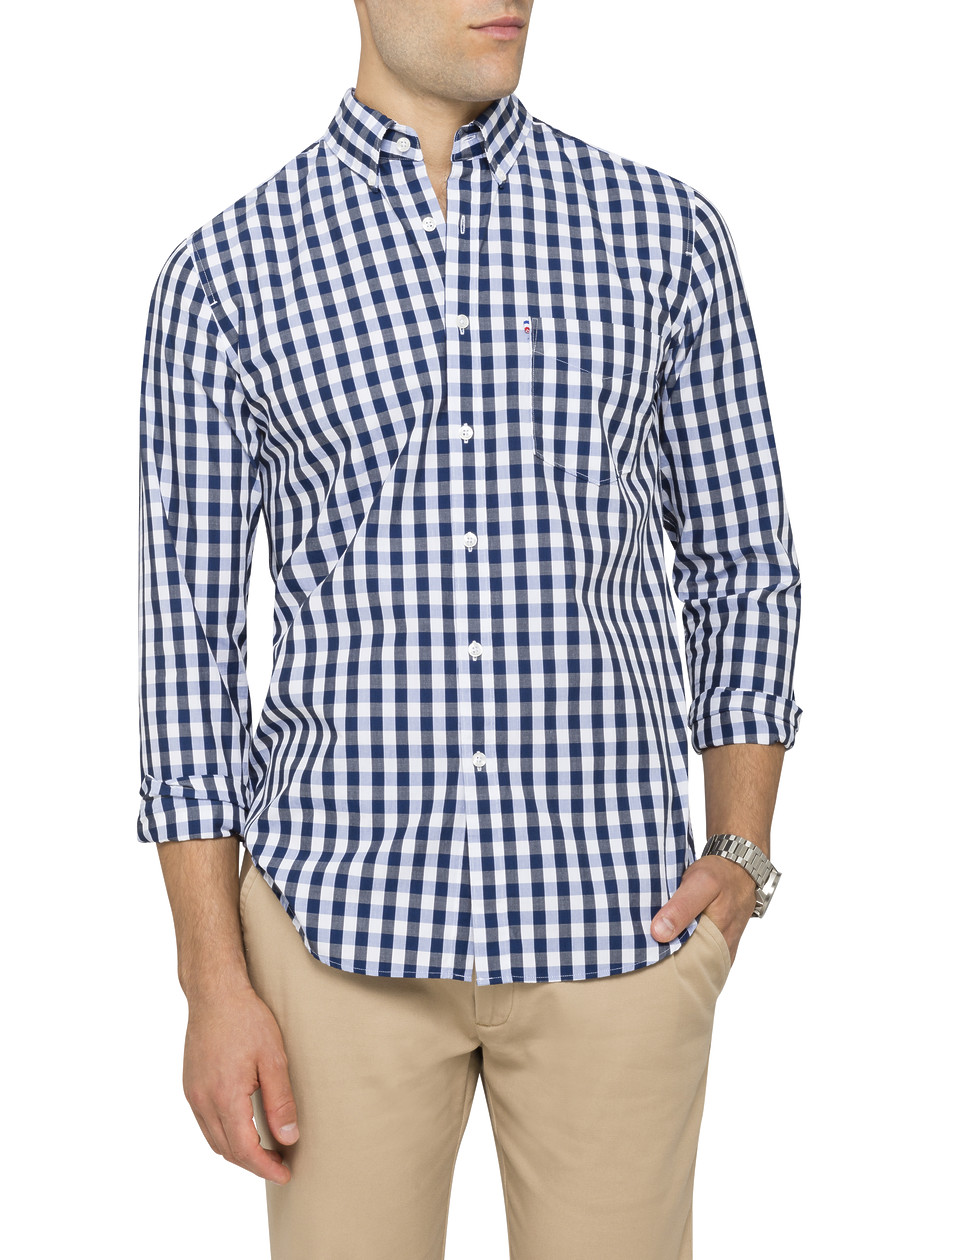 Mens casual shirt navy blue check van heusen casual for Navy blue shirt online